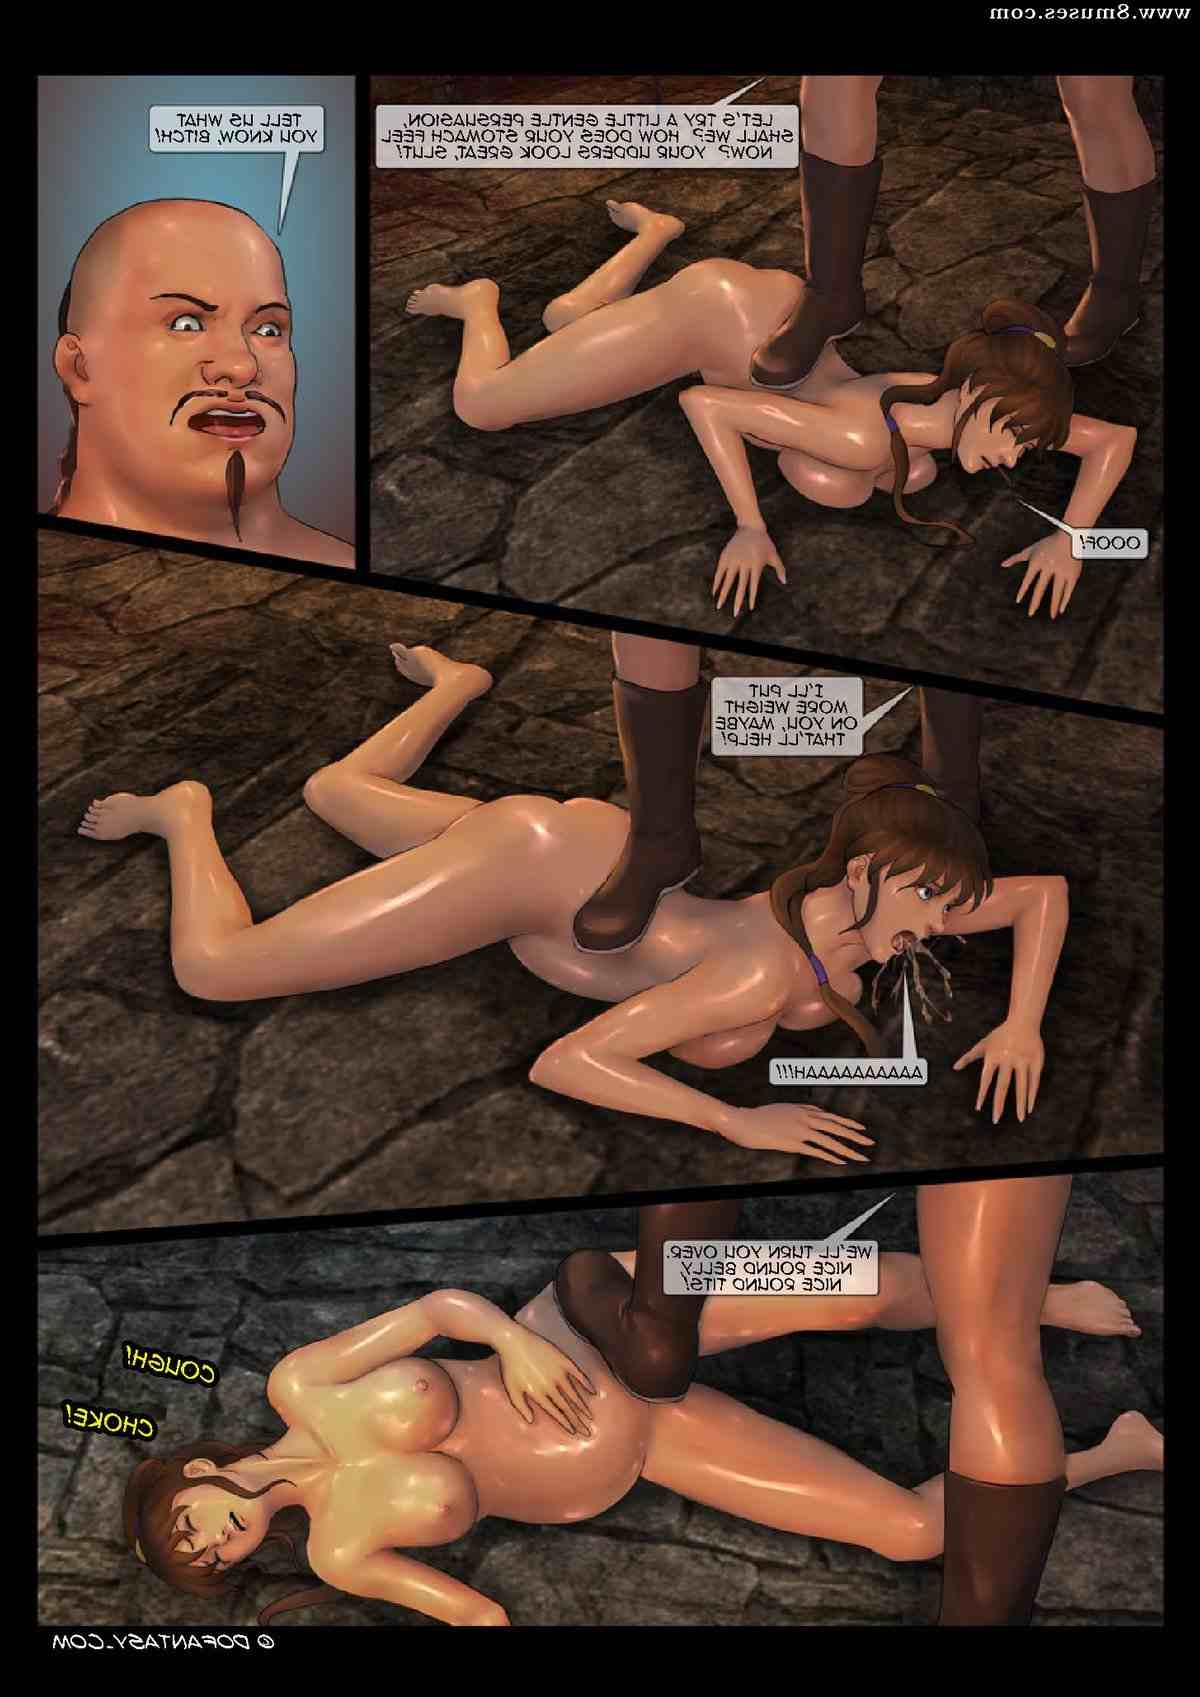 Fansadox-Comics/401-500/Fansadox-412-Feather-Female-General-2 Fansadox_412_-_Feather_-_Female_General_2__8muses_-_Sex_and_Porn_Comics_36.jpg